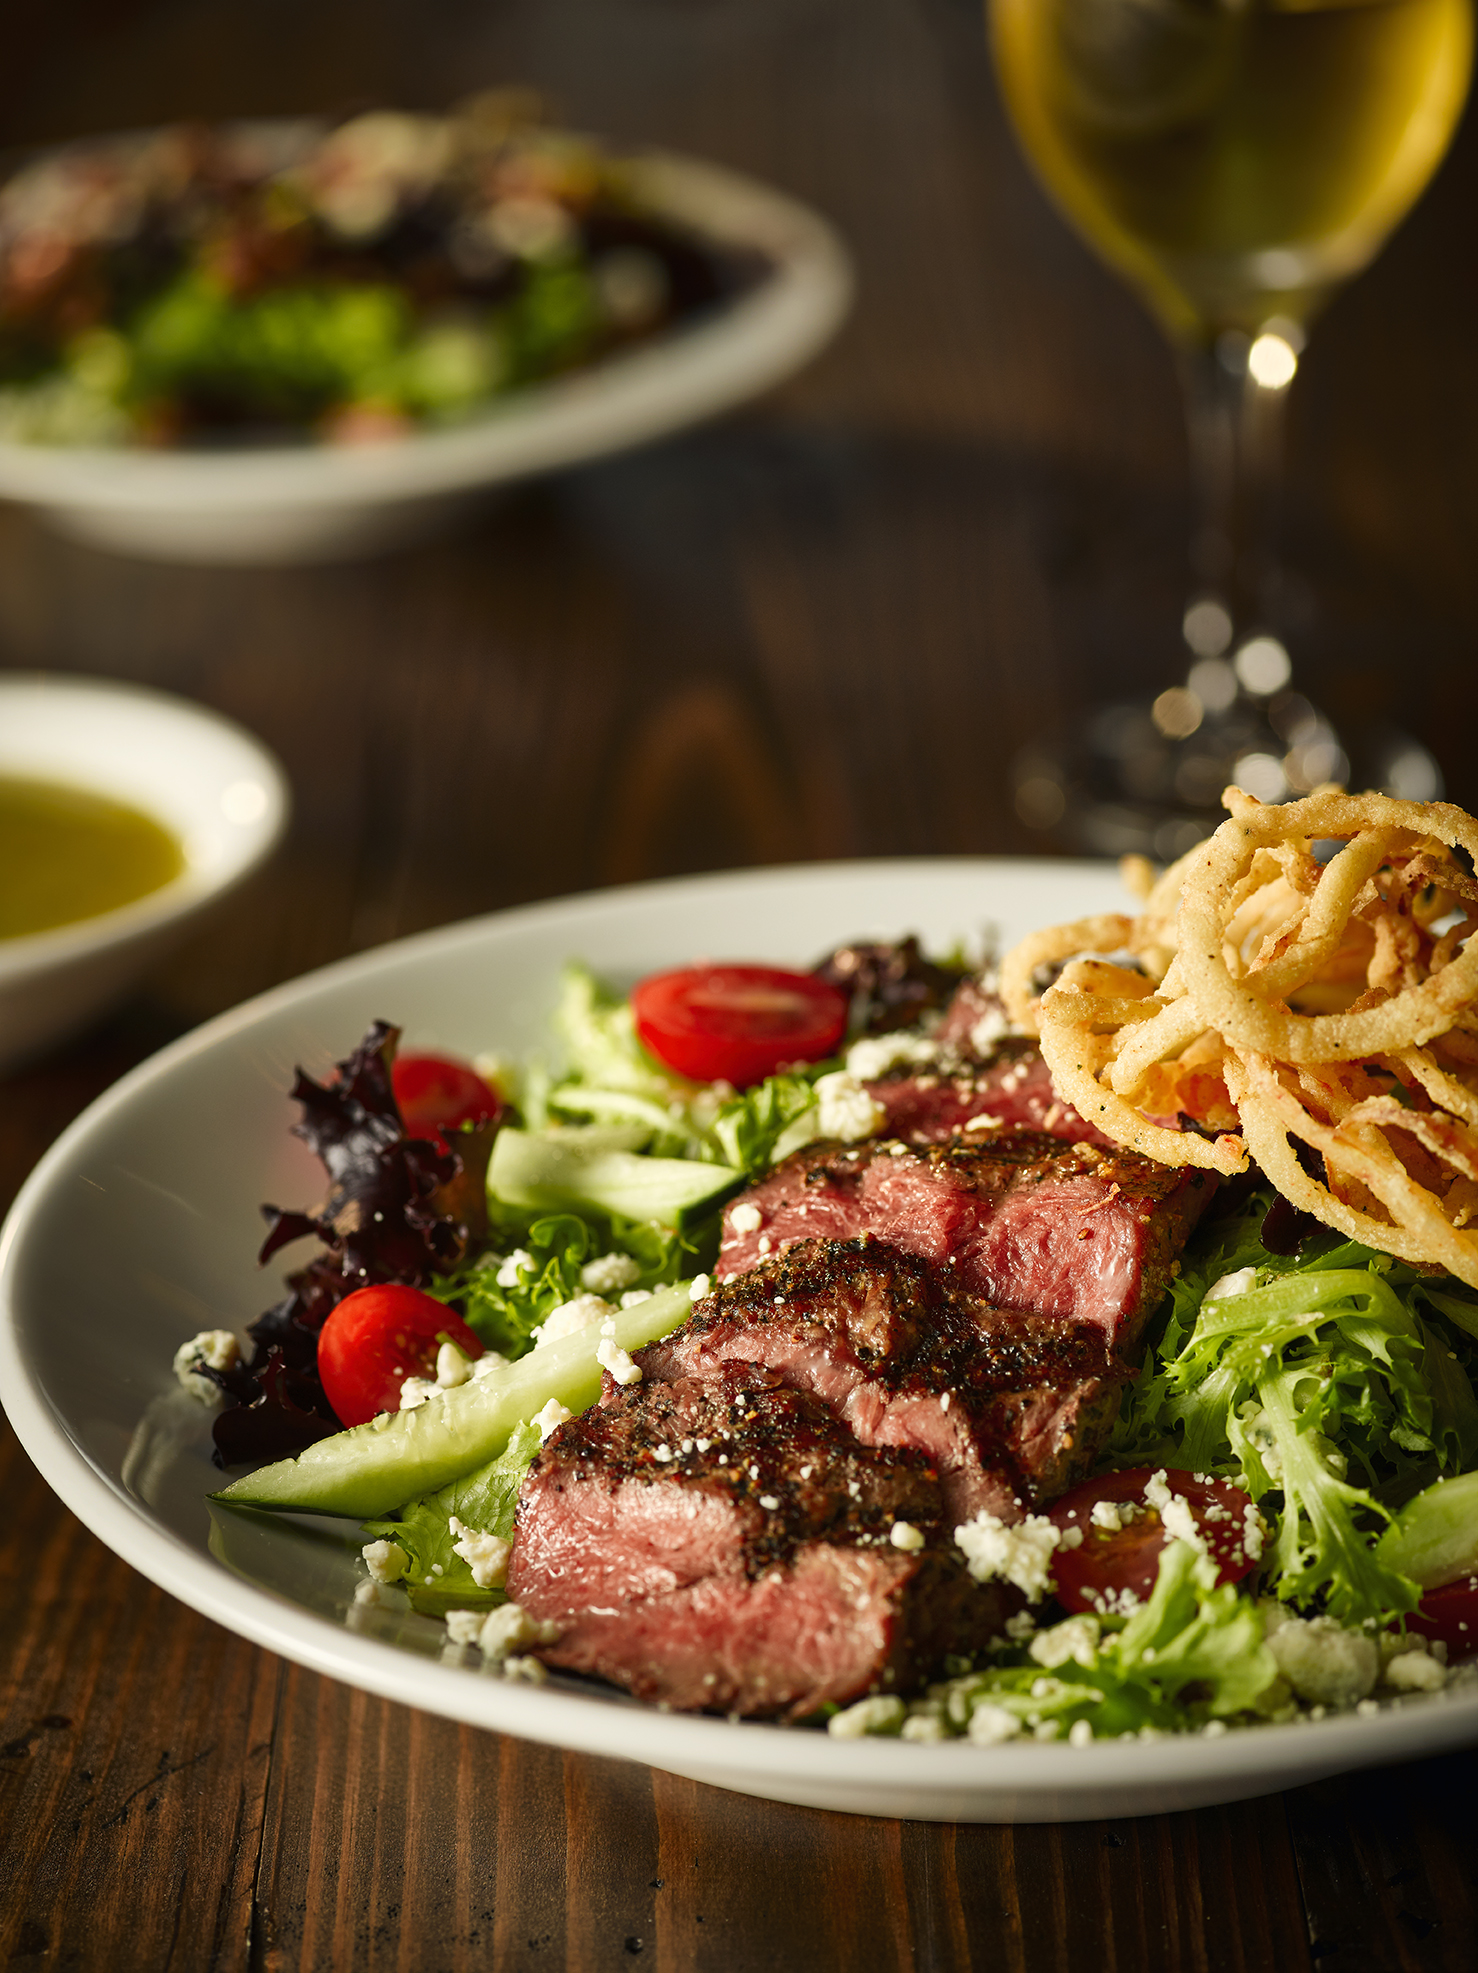 Big Steak Salad